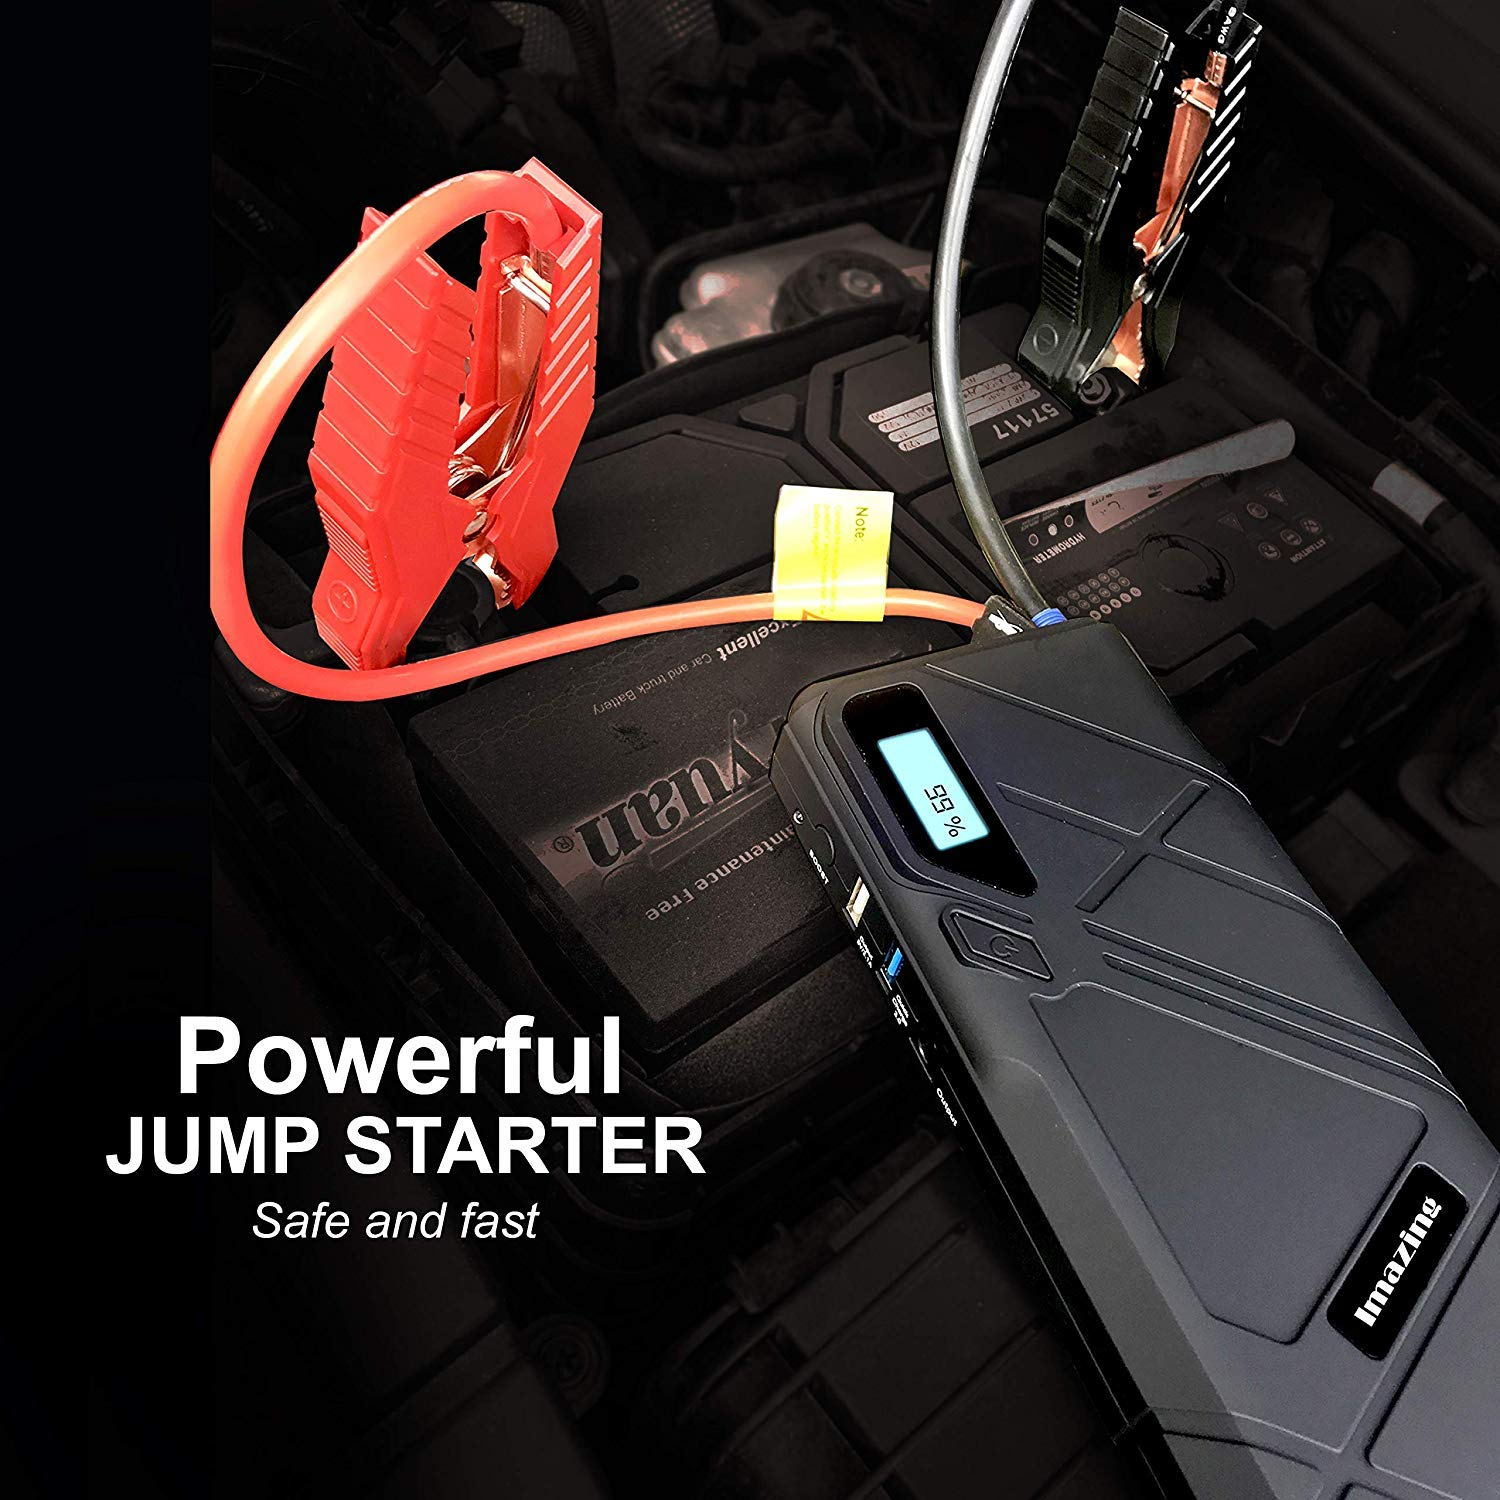 Imazing Portable Car Jump Starter Up to 8L Gas or 6L Diesel Engine Auto Battery Booster Power Pack Phone Power Bank With Smart Charging Ports Air Compressor Pump 1500A Peak 12000mAH